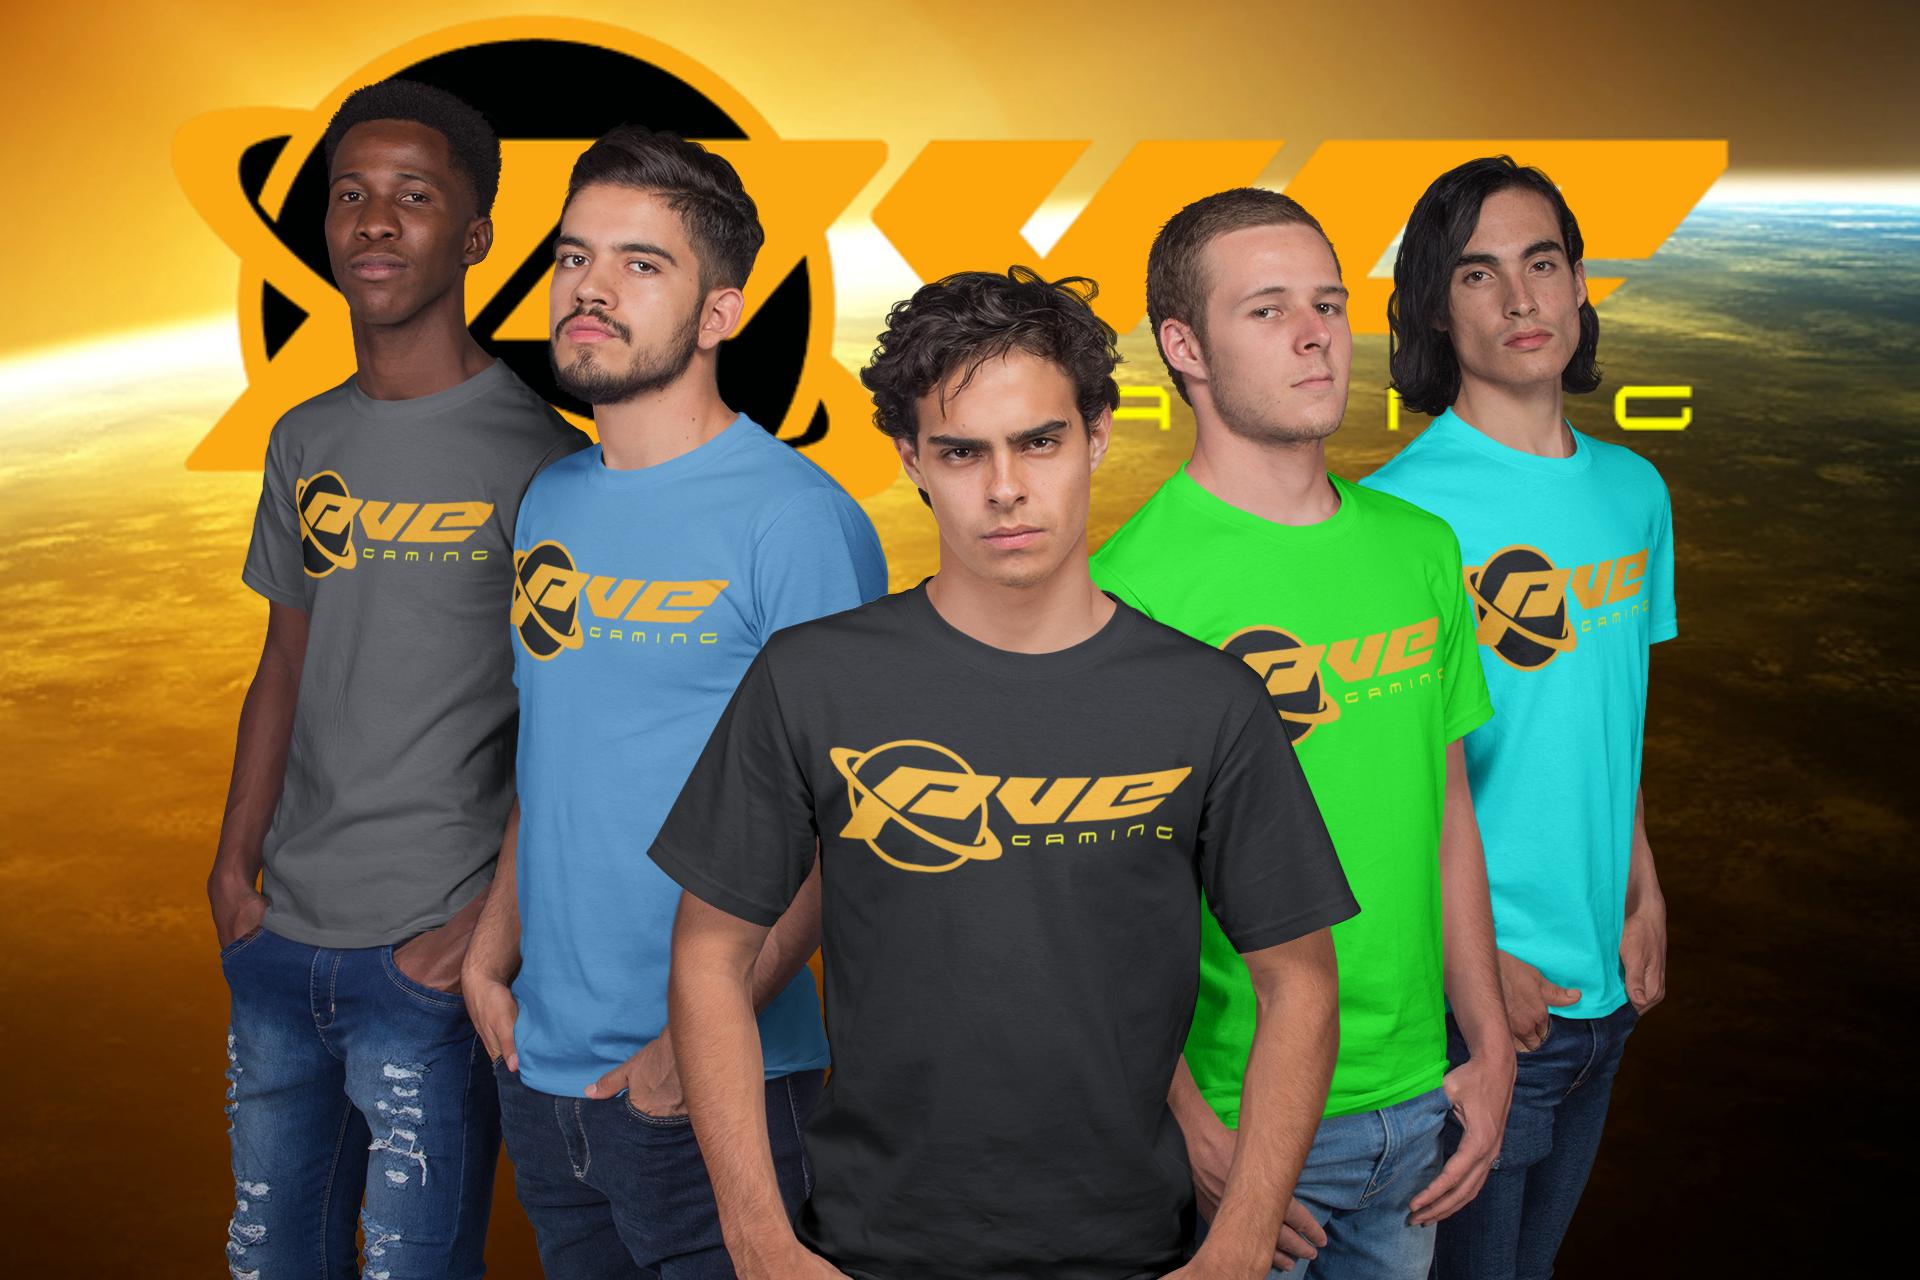 group-shot-mockup-of-an-esports-team-wearing-t-shirts-a21093